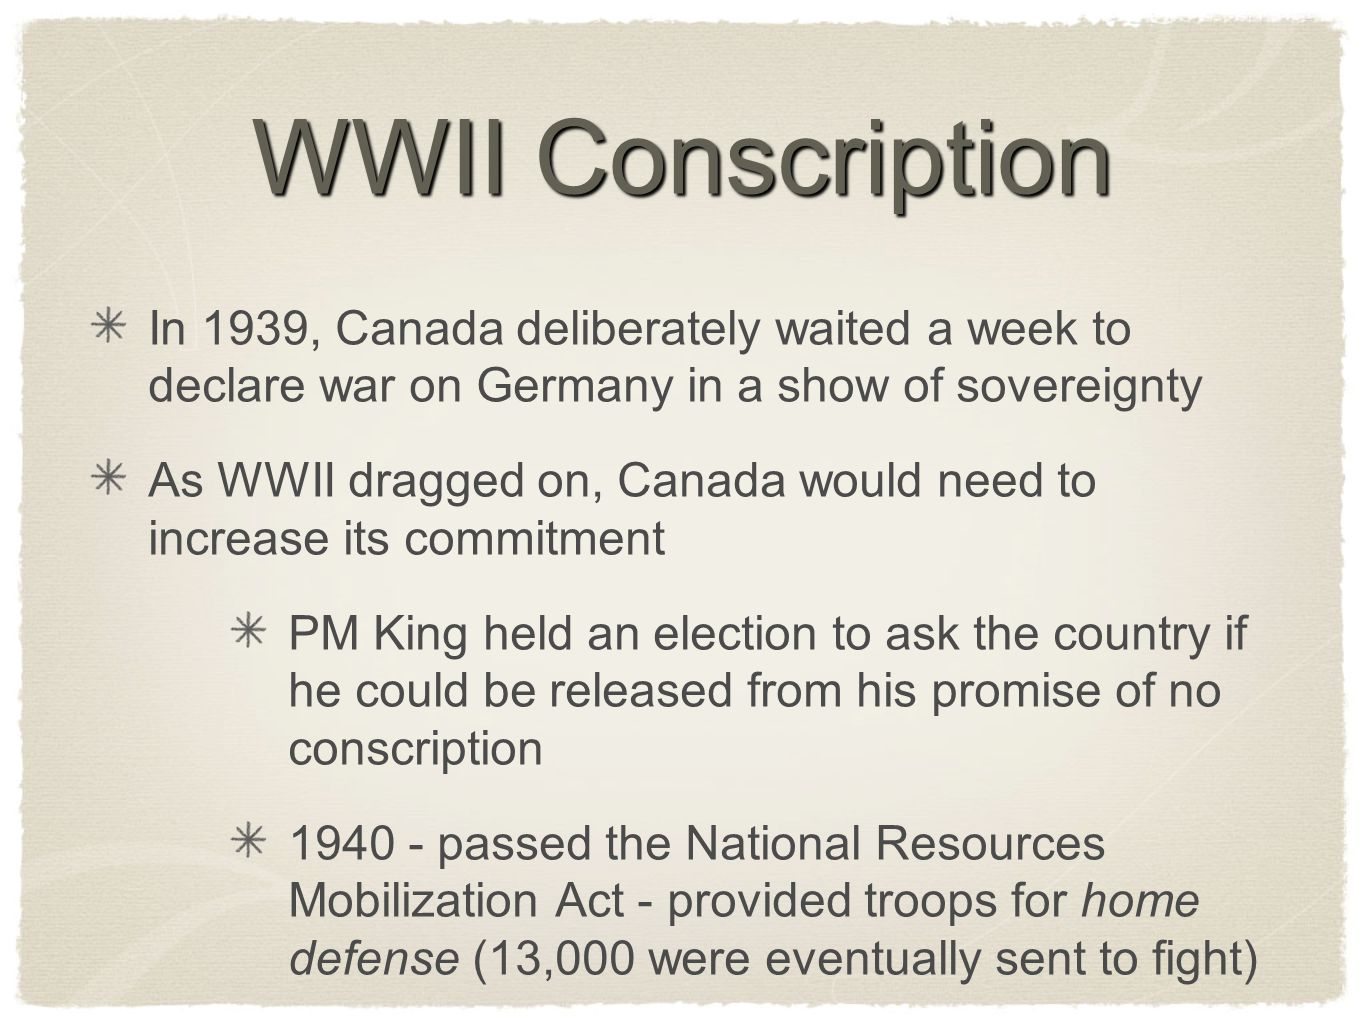 WWII Conscription In 1939, Canada deliberately waited a week to declare war on Germany in a show of sovereignty.